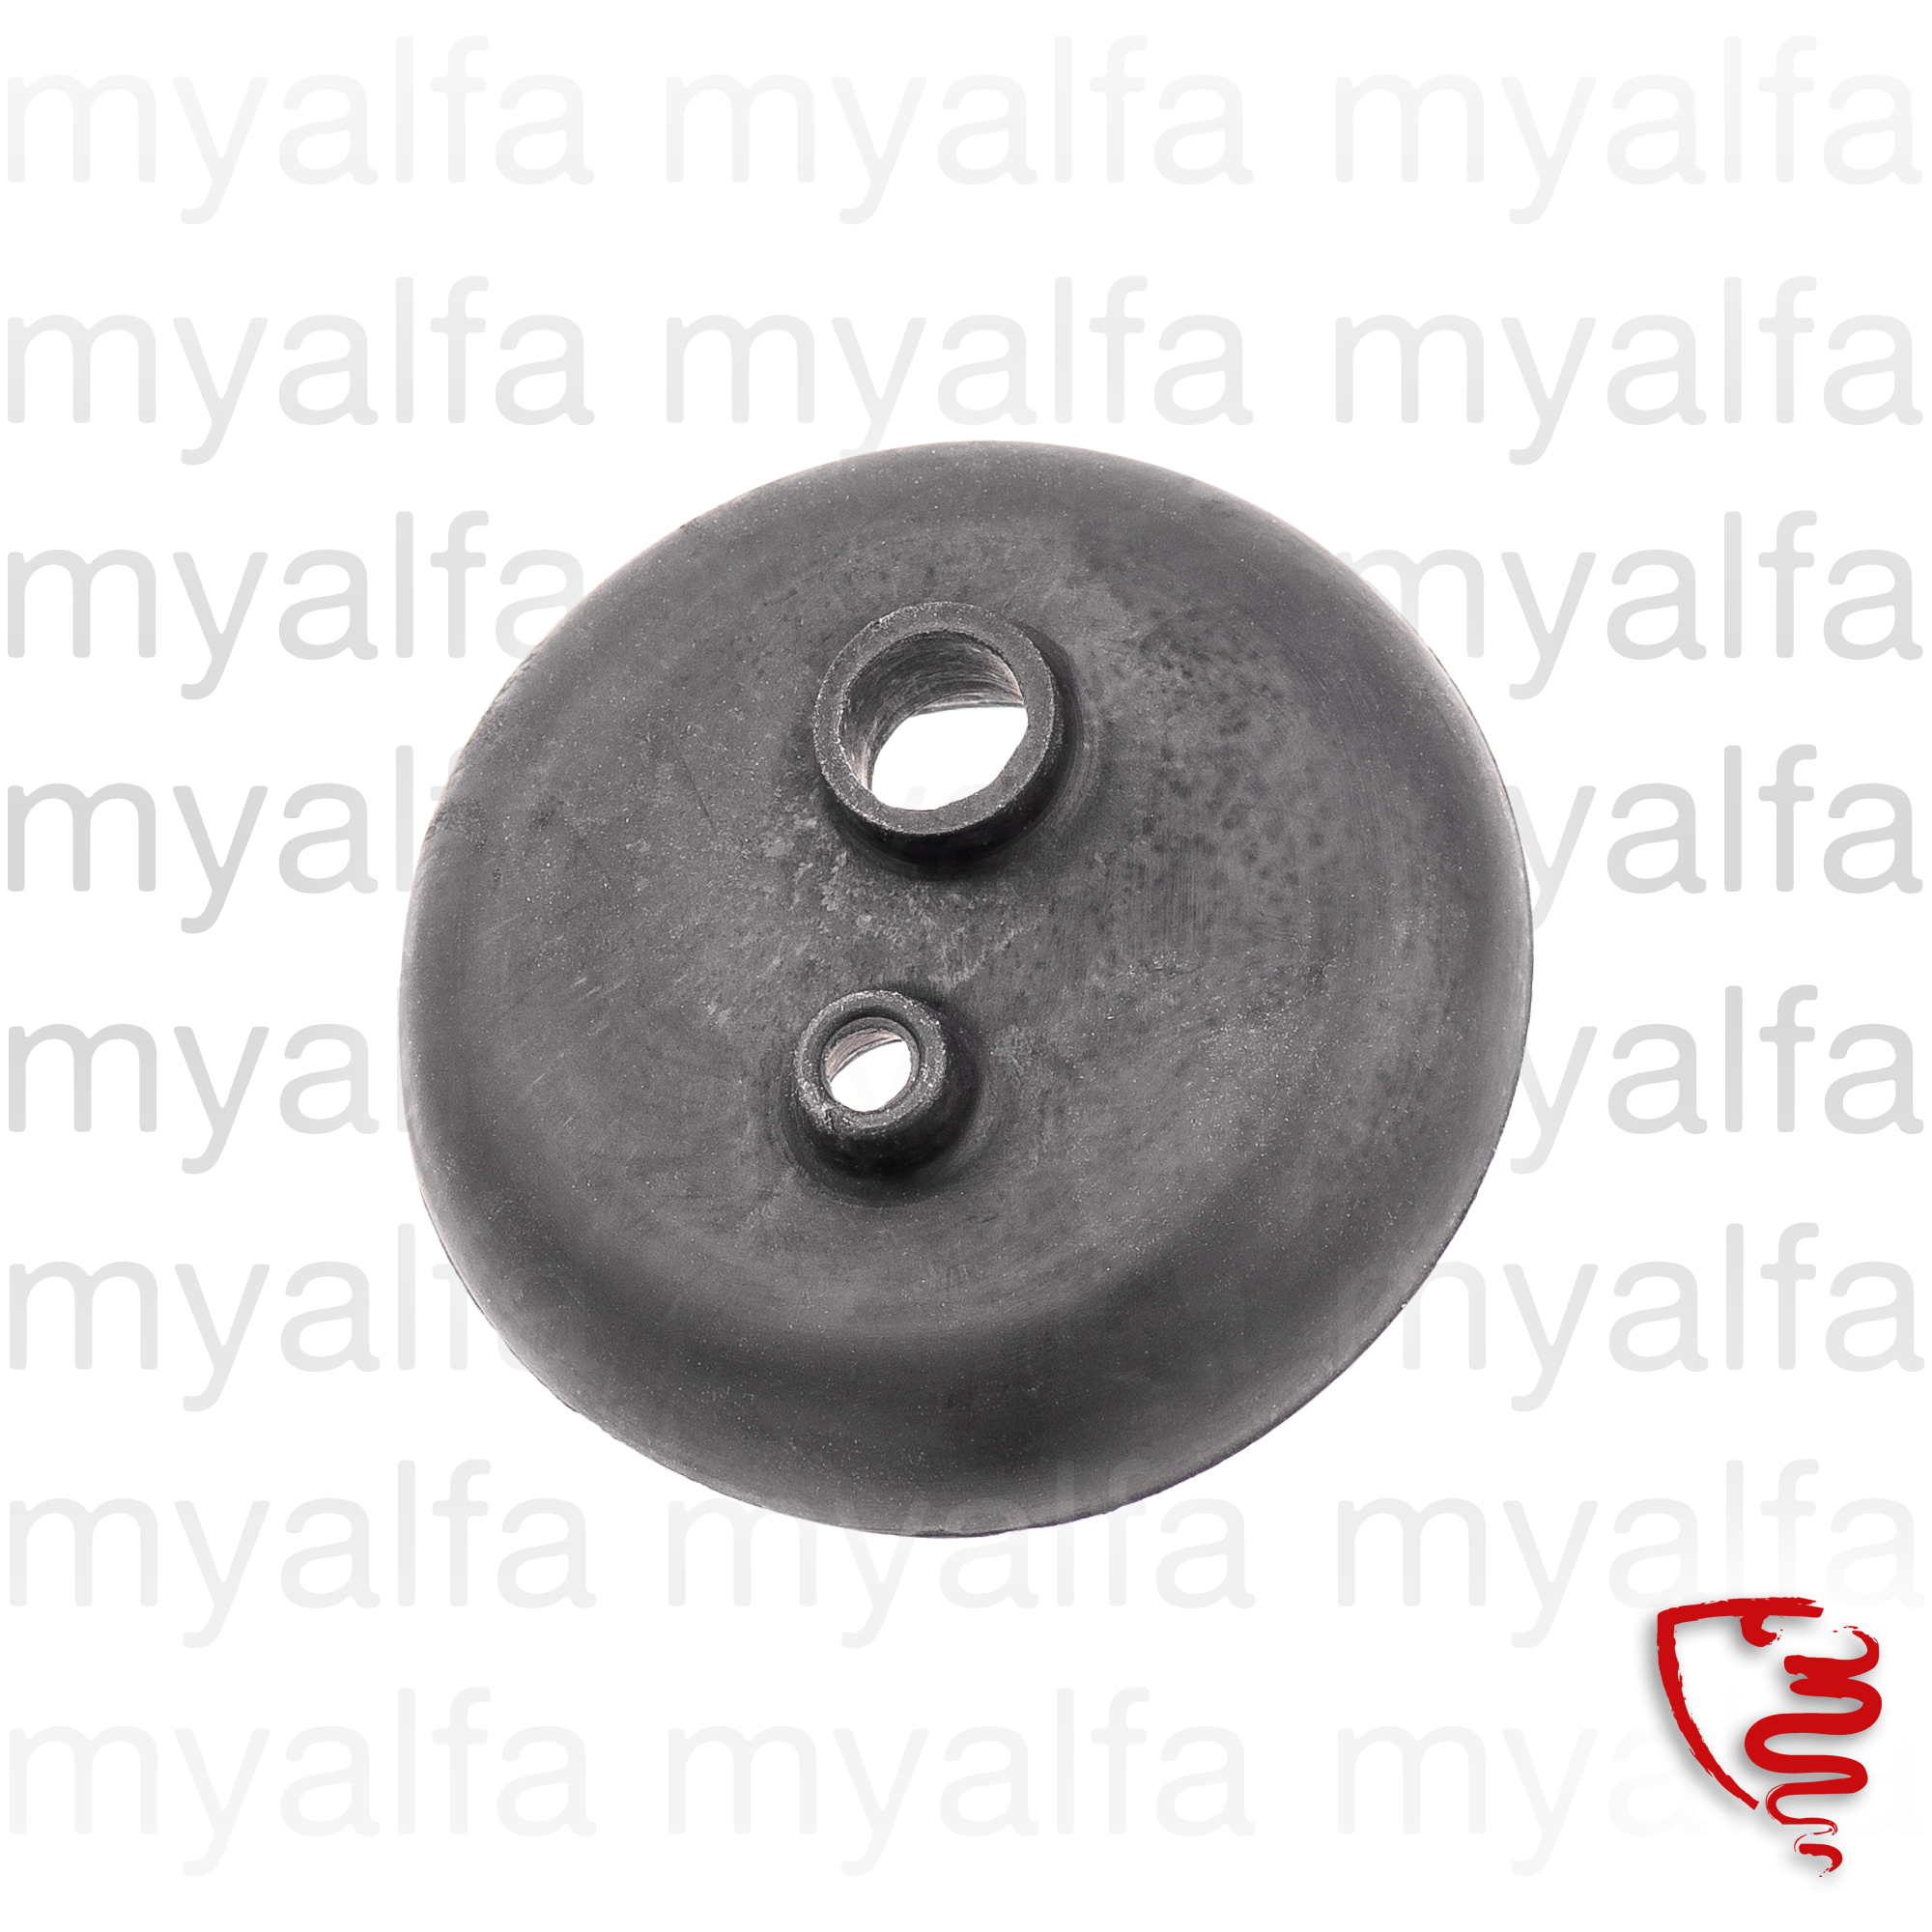 Dowel for motor cable wipers for 105/115, Body parts, Rubber parts, Body Seals/Grommets, Windshield wipers, Nozzles, bags, pipes